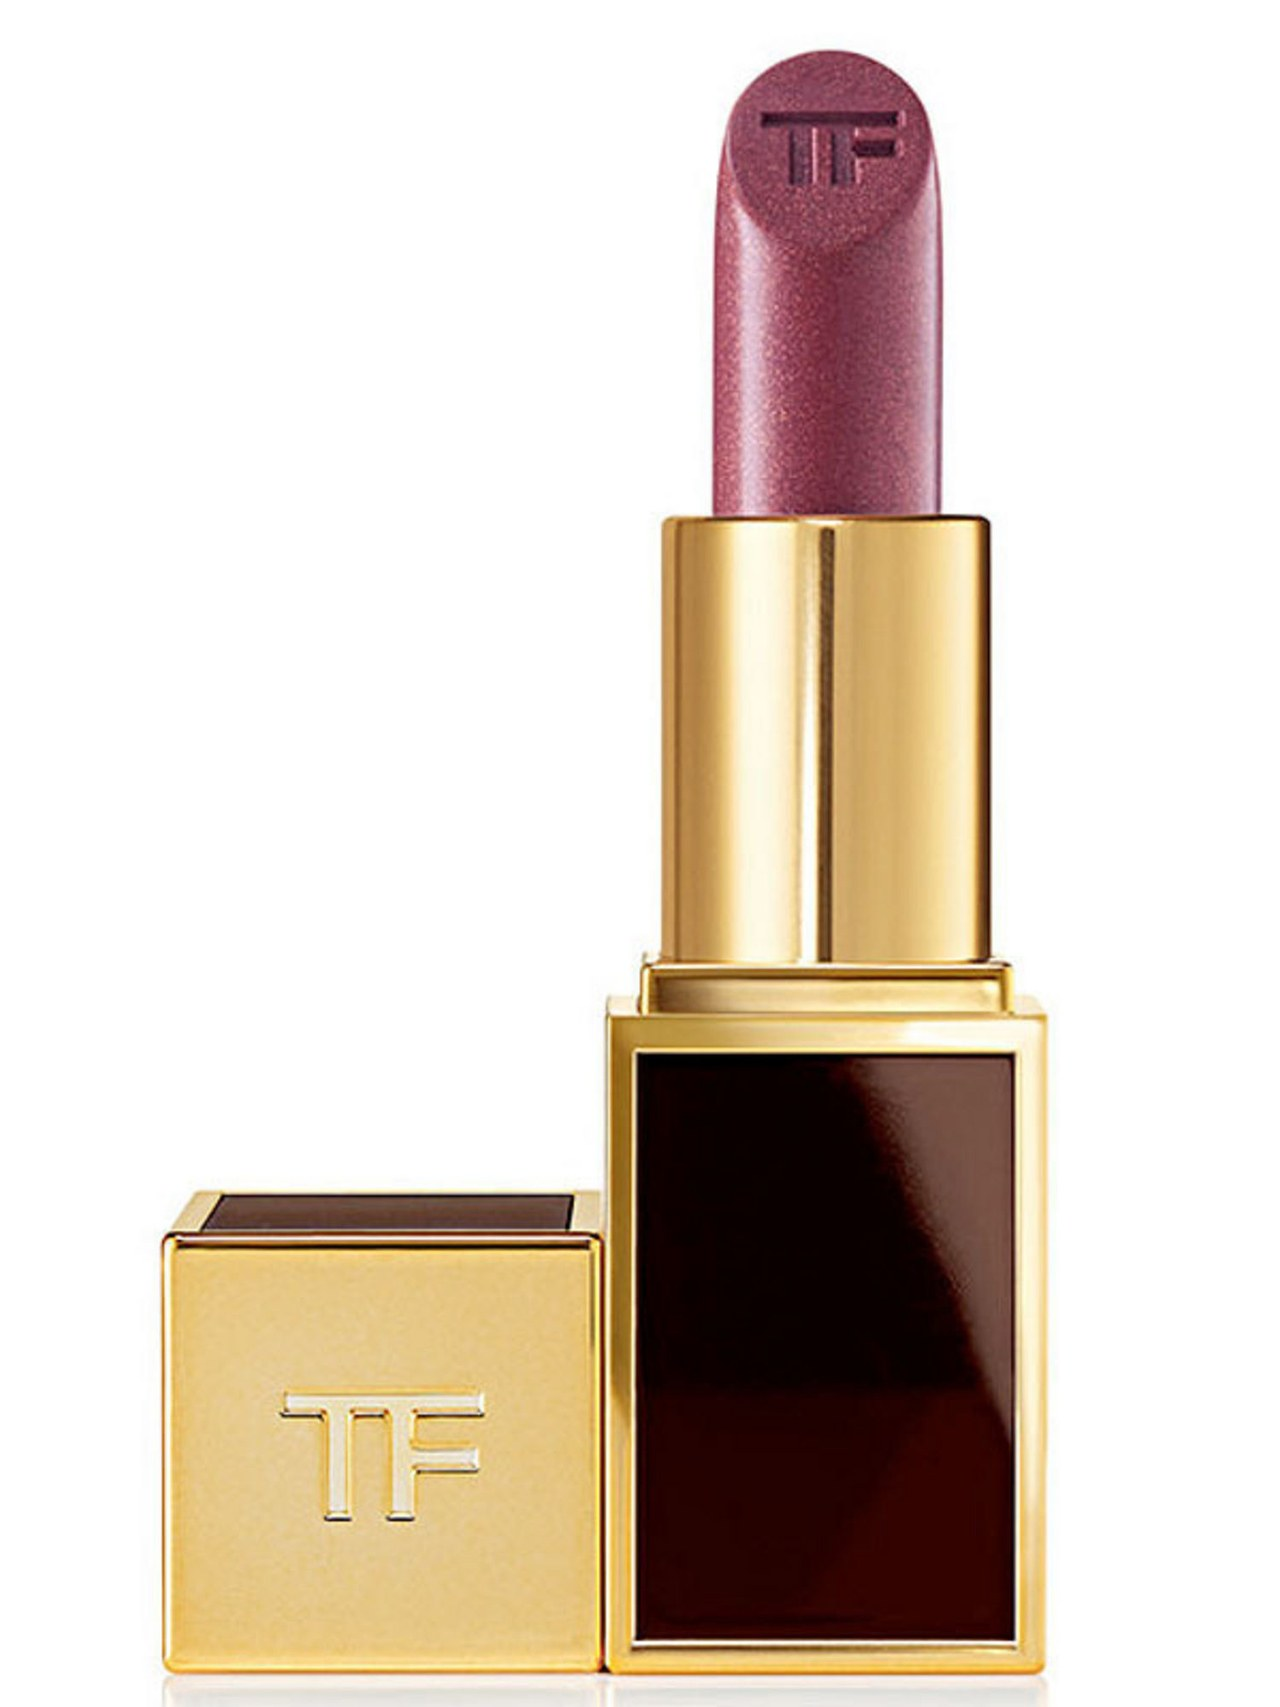 beauty 2015 12 drake lipstick tom ford collection main